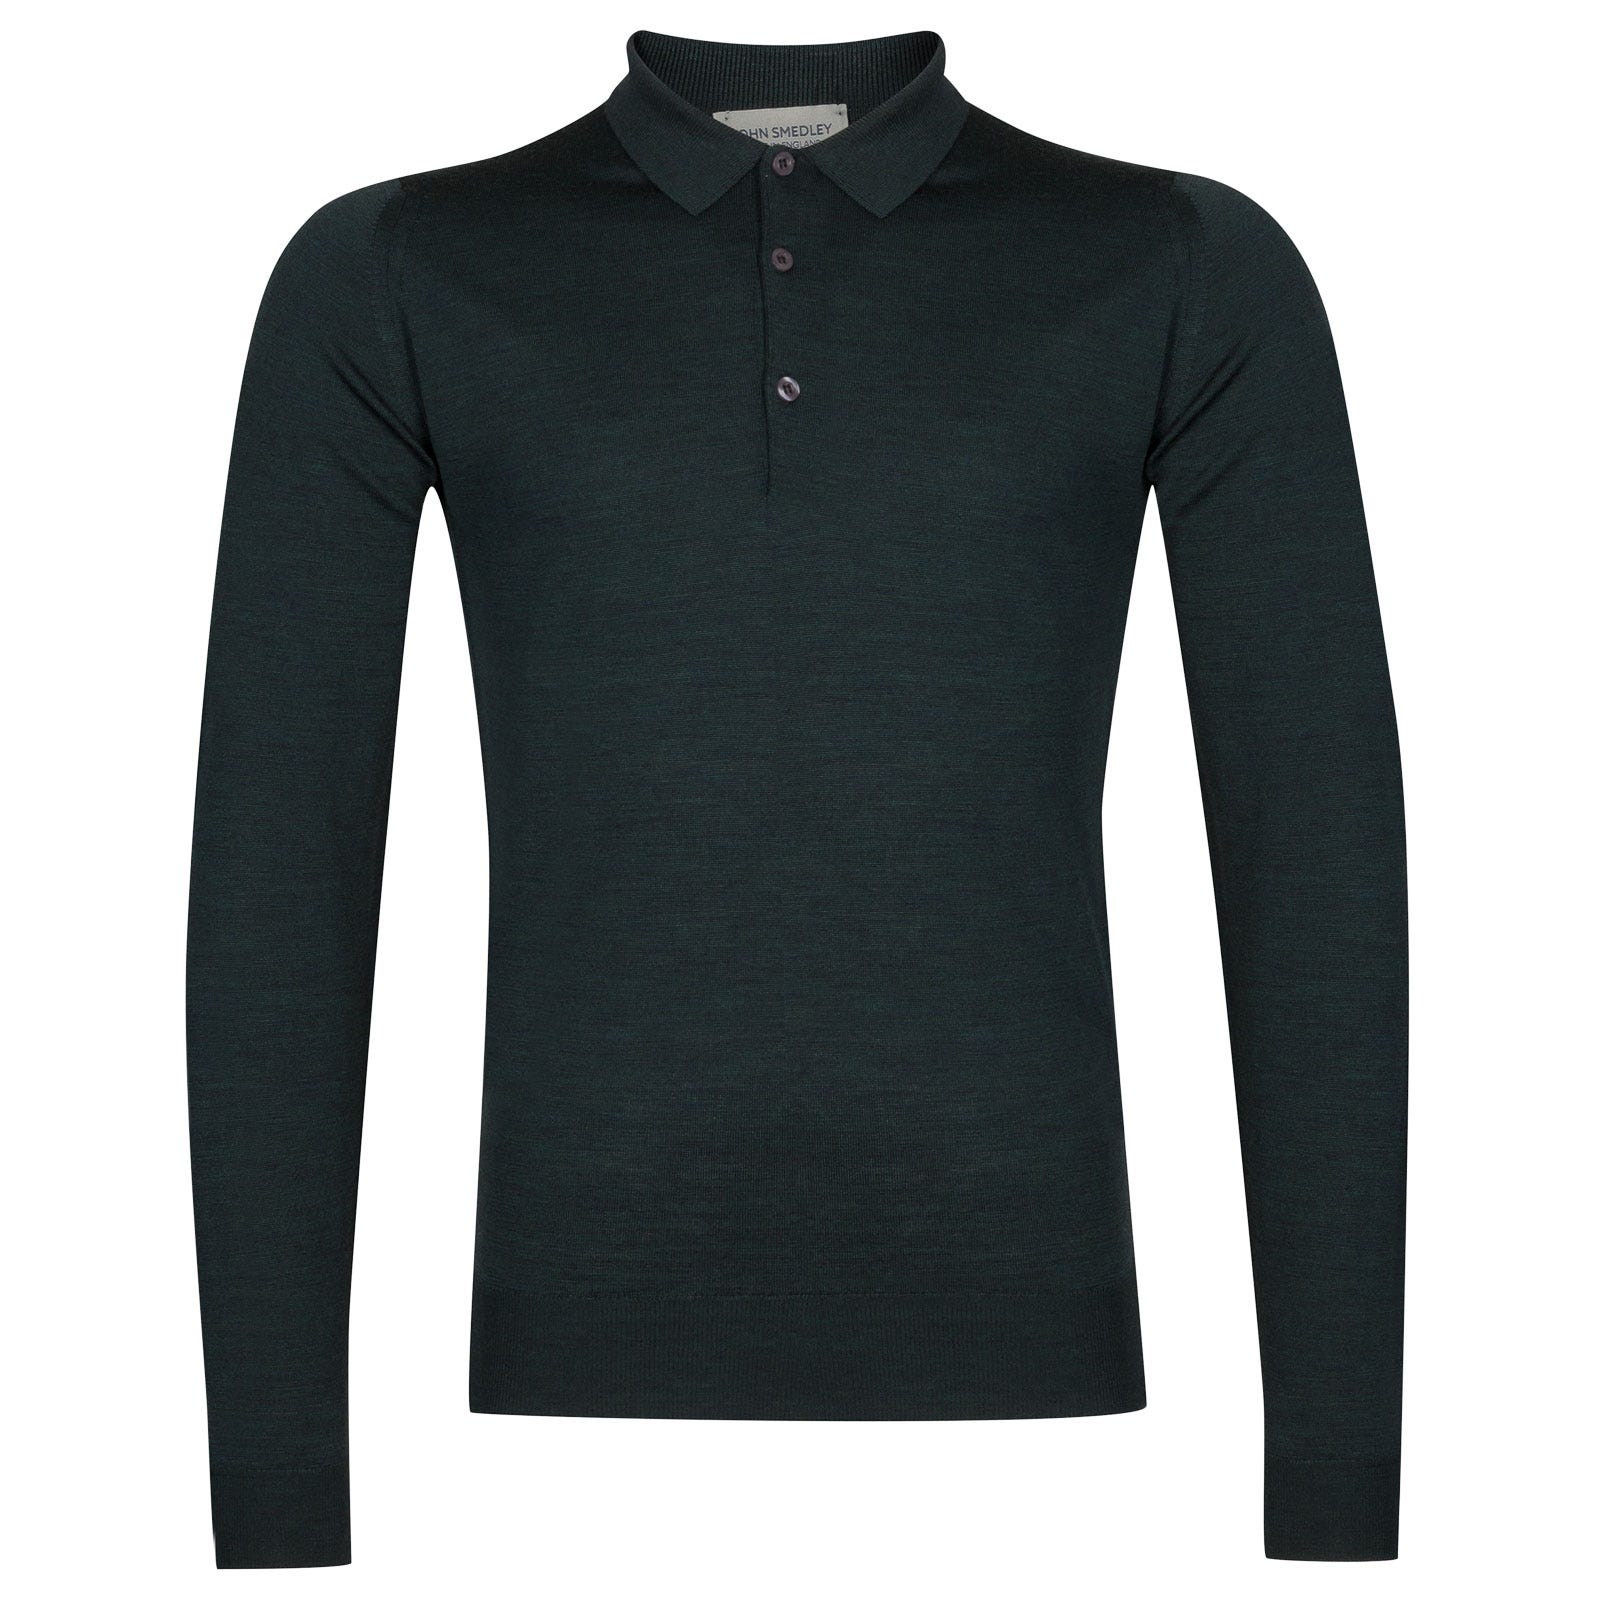 John Smedley belper Merino Wool Shirt in Racing Green-M